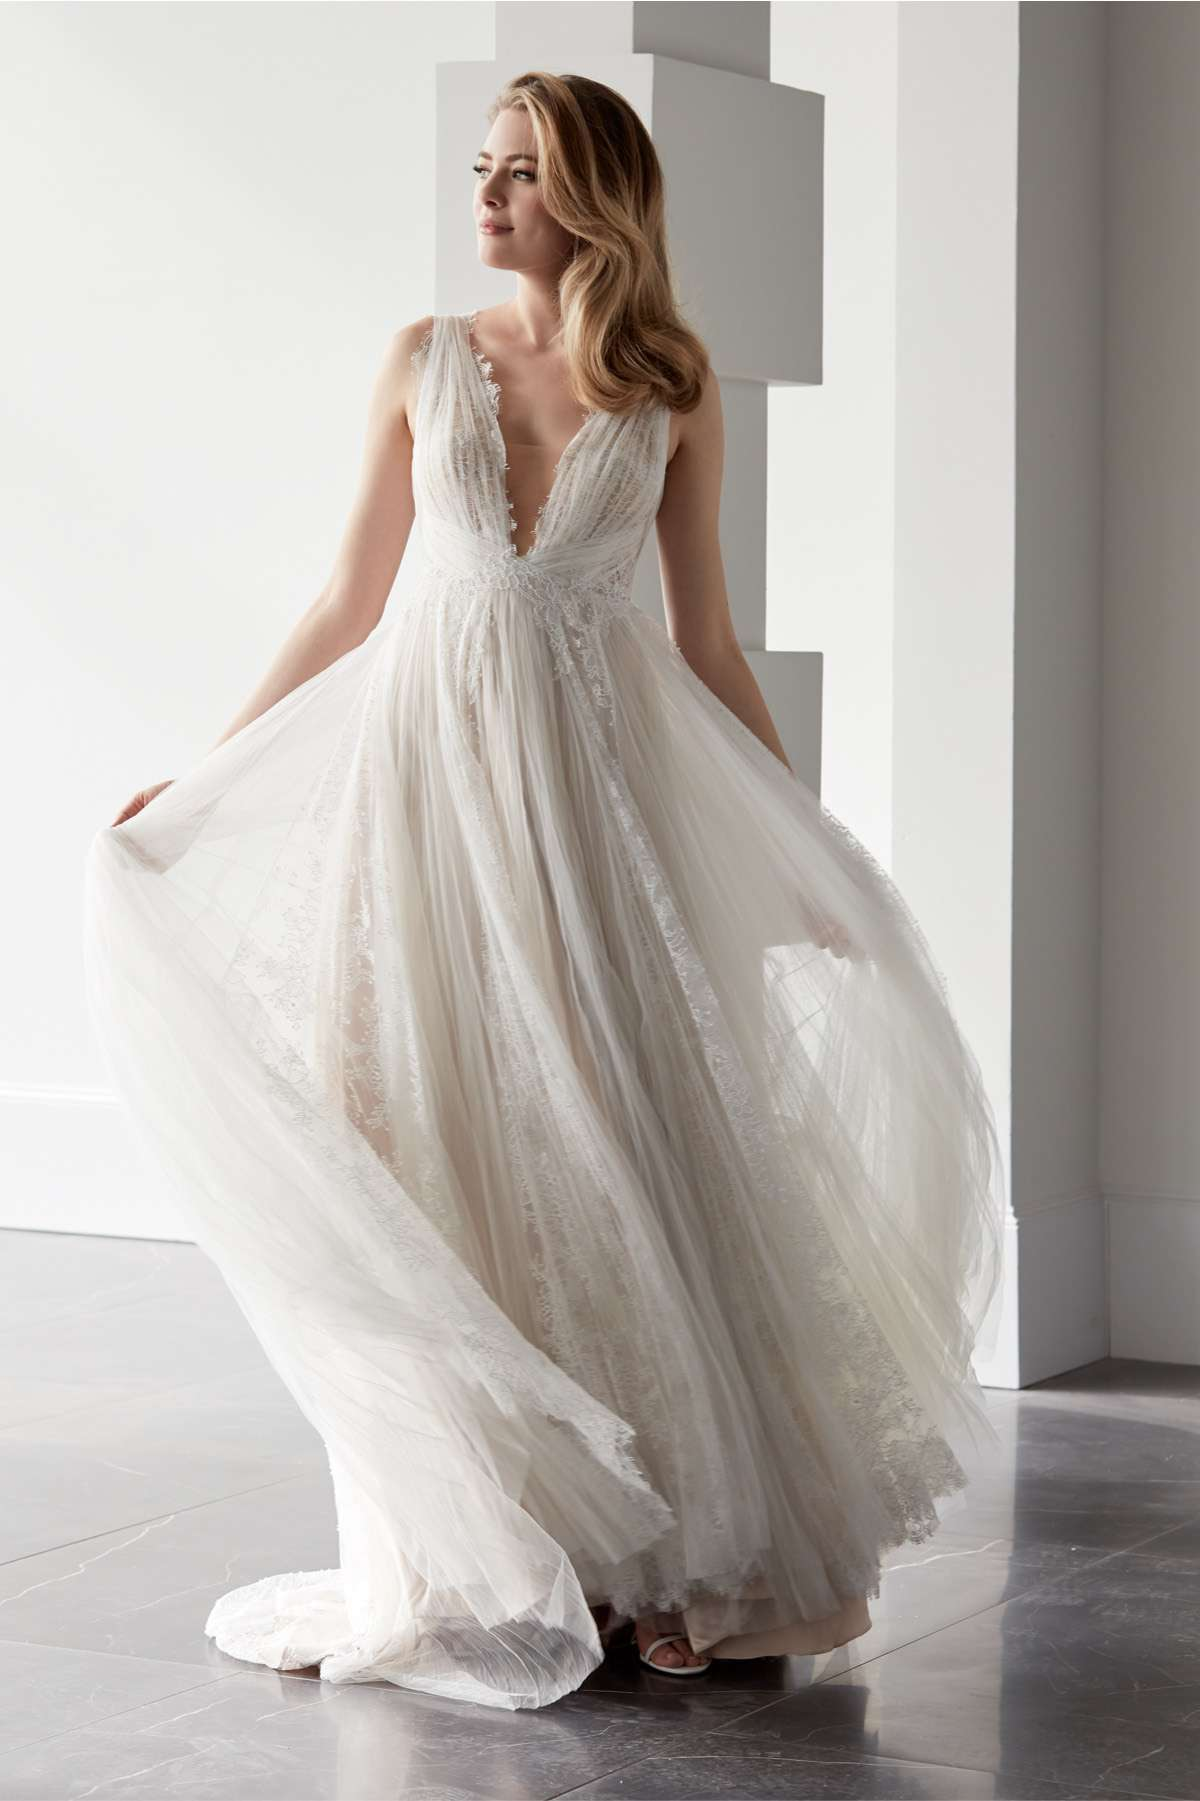 Model in sleeveless A-line gown with lace and a deep illusion neckline